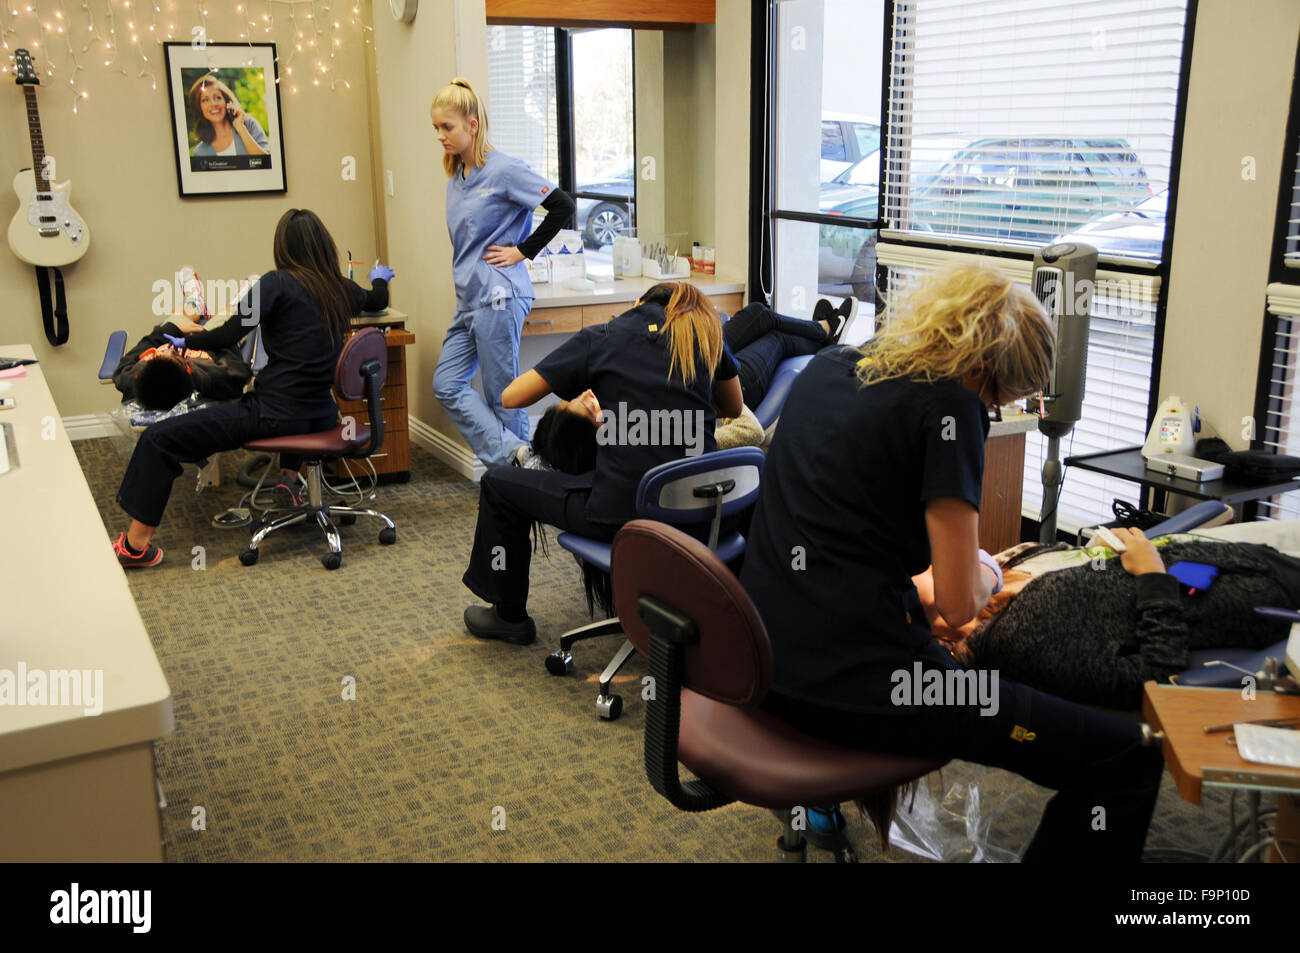 An orthodontist is a dentist who specializes in straightening crooked teeth.  Several assistants adjusting braces - Stock Image